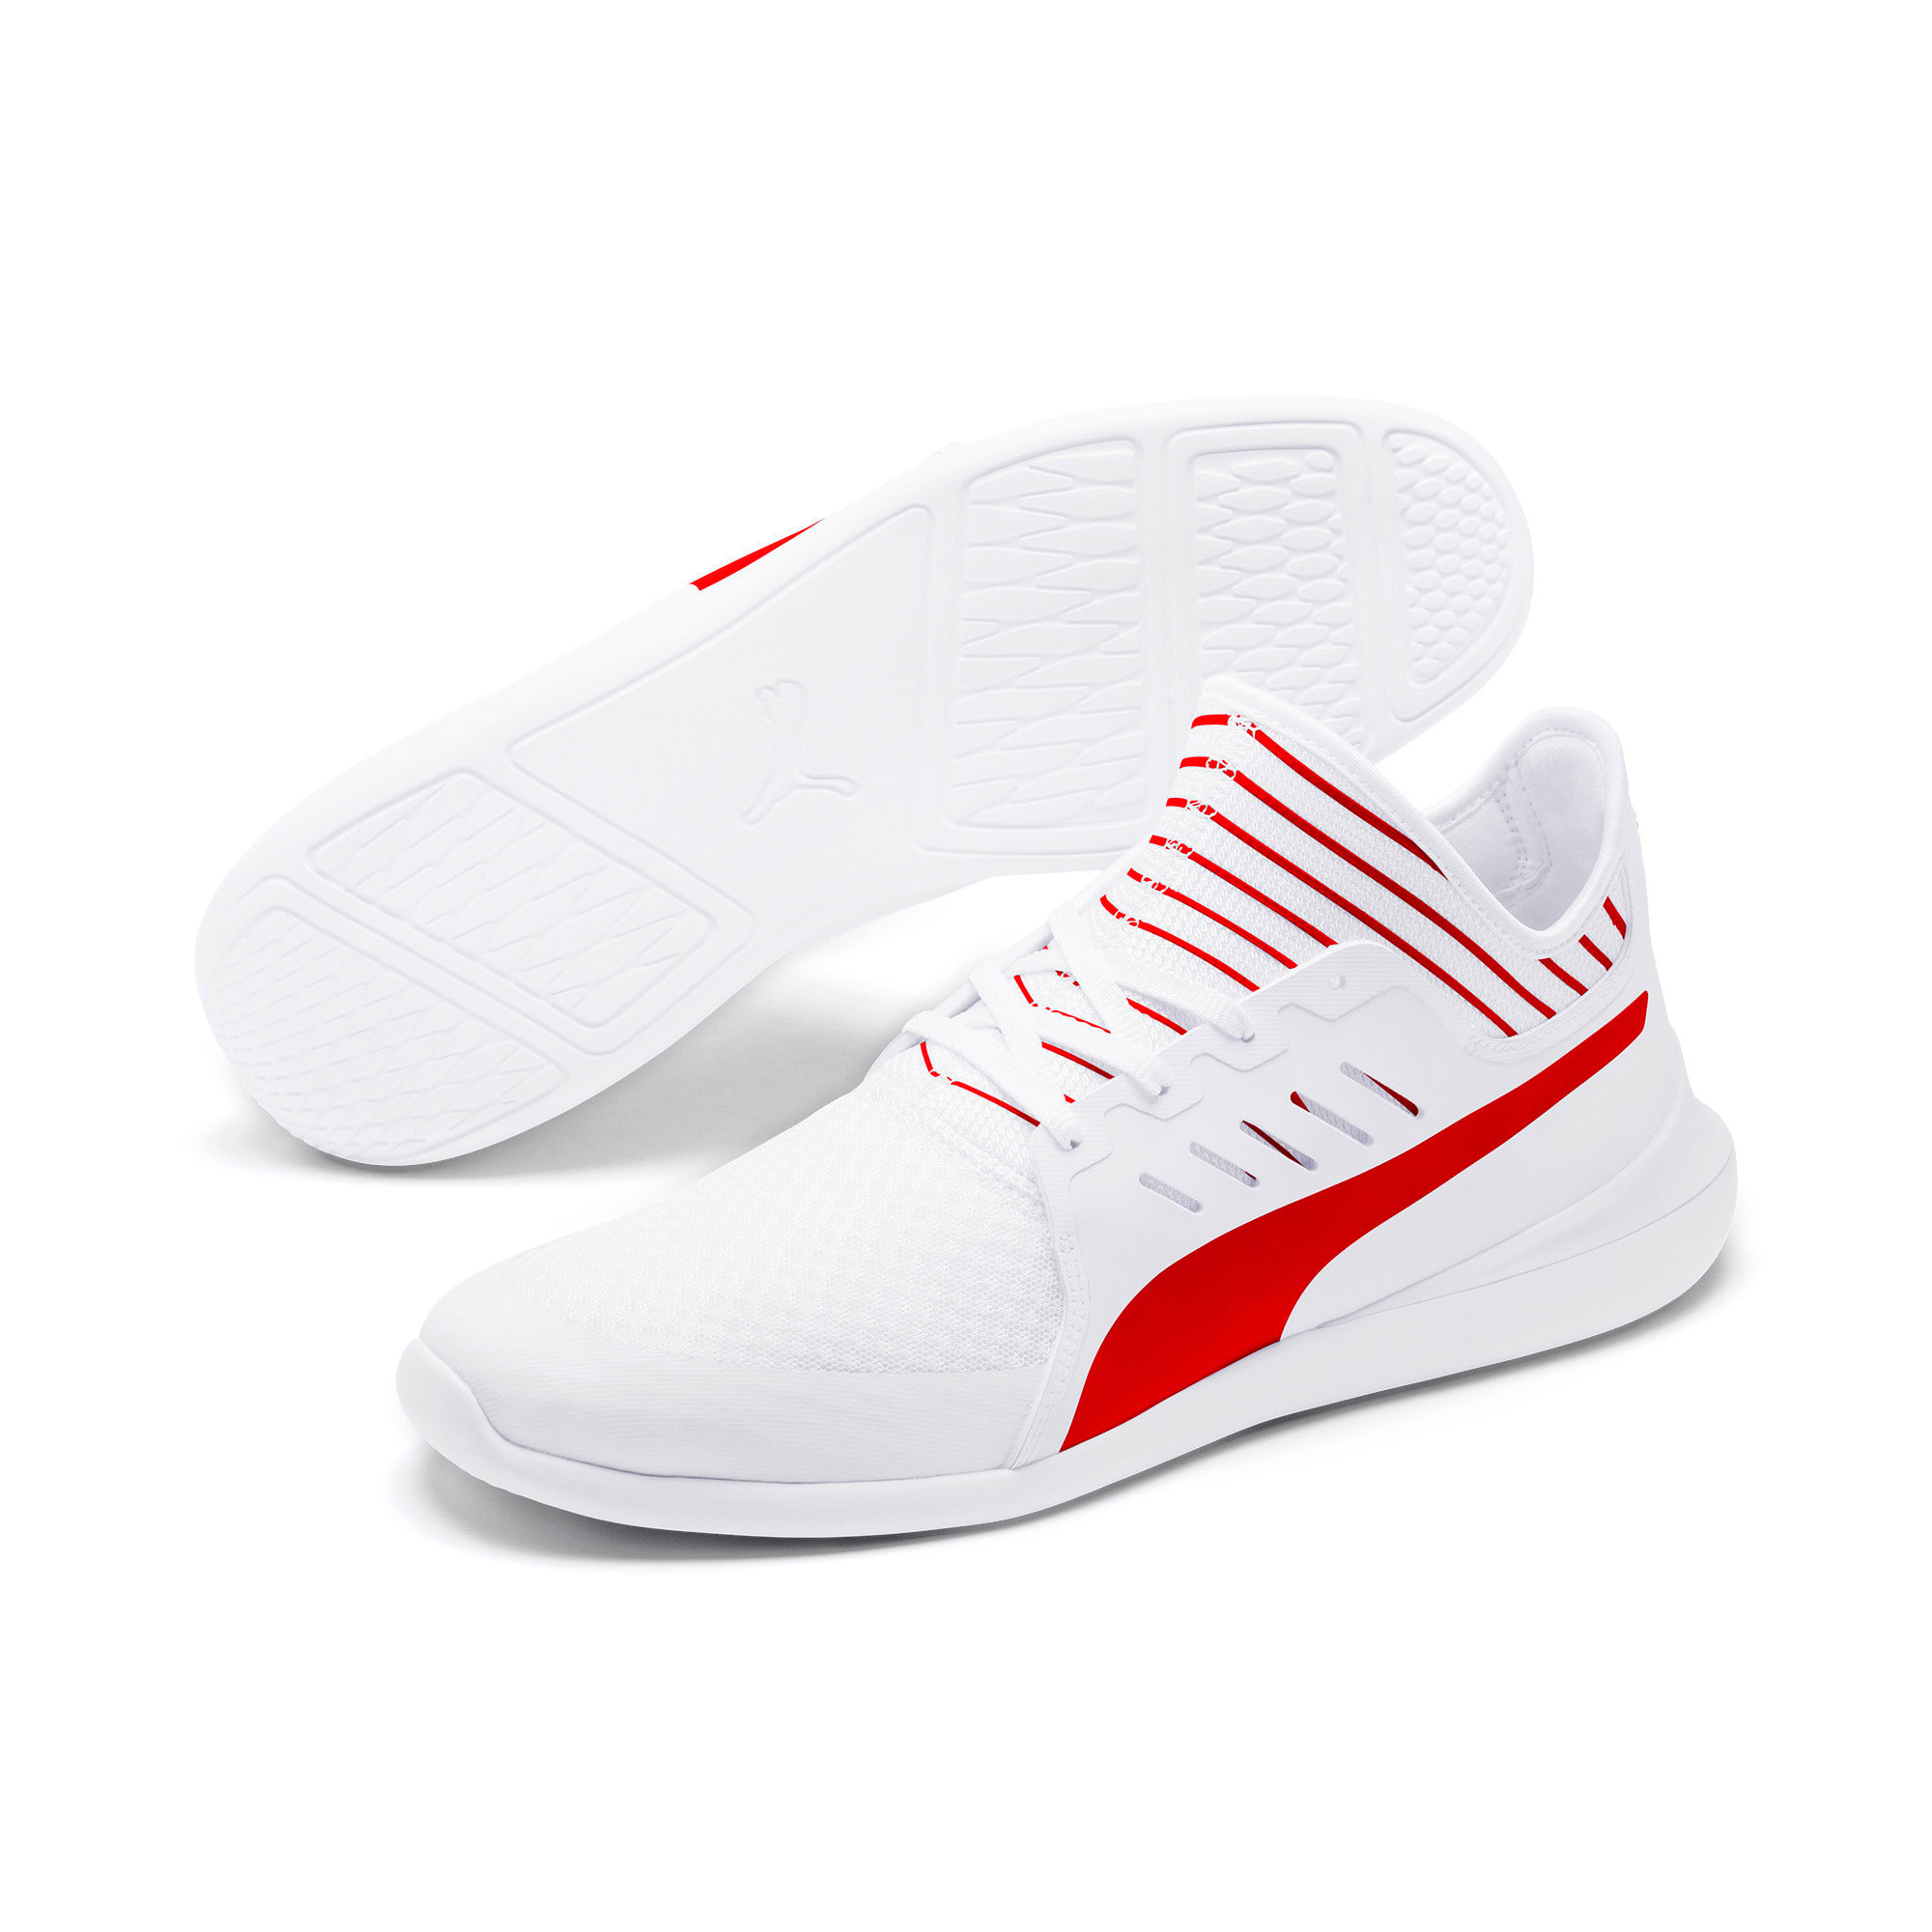 Thumbnail 3 of Scuderia Ferrari Evo Cat Mace Sneakers, Puma White-Rosso Corsa, medium